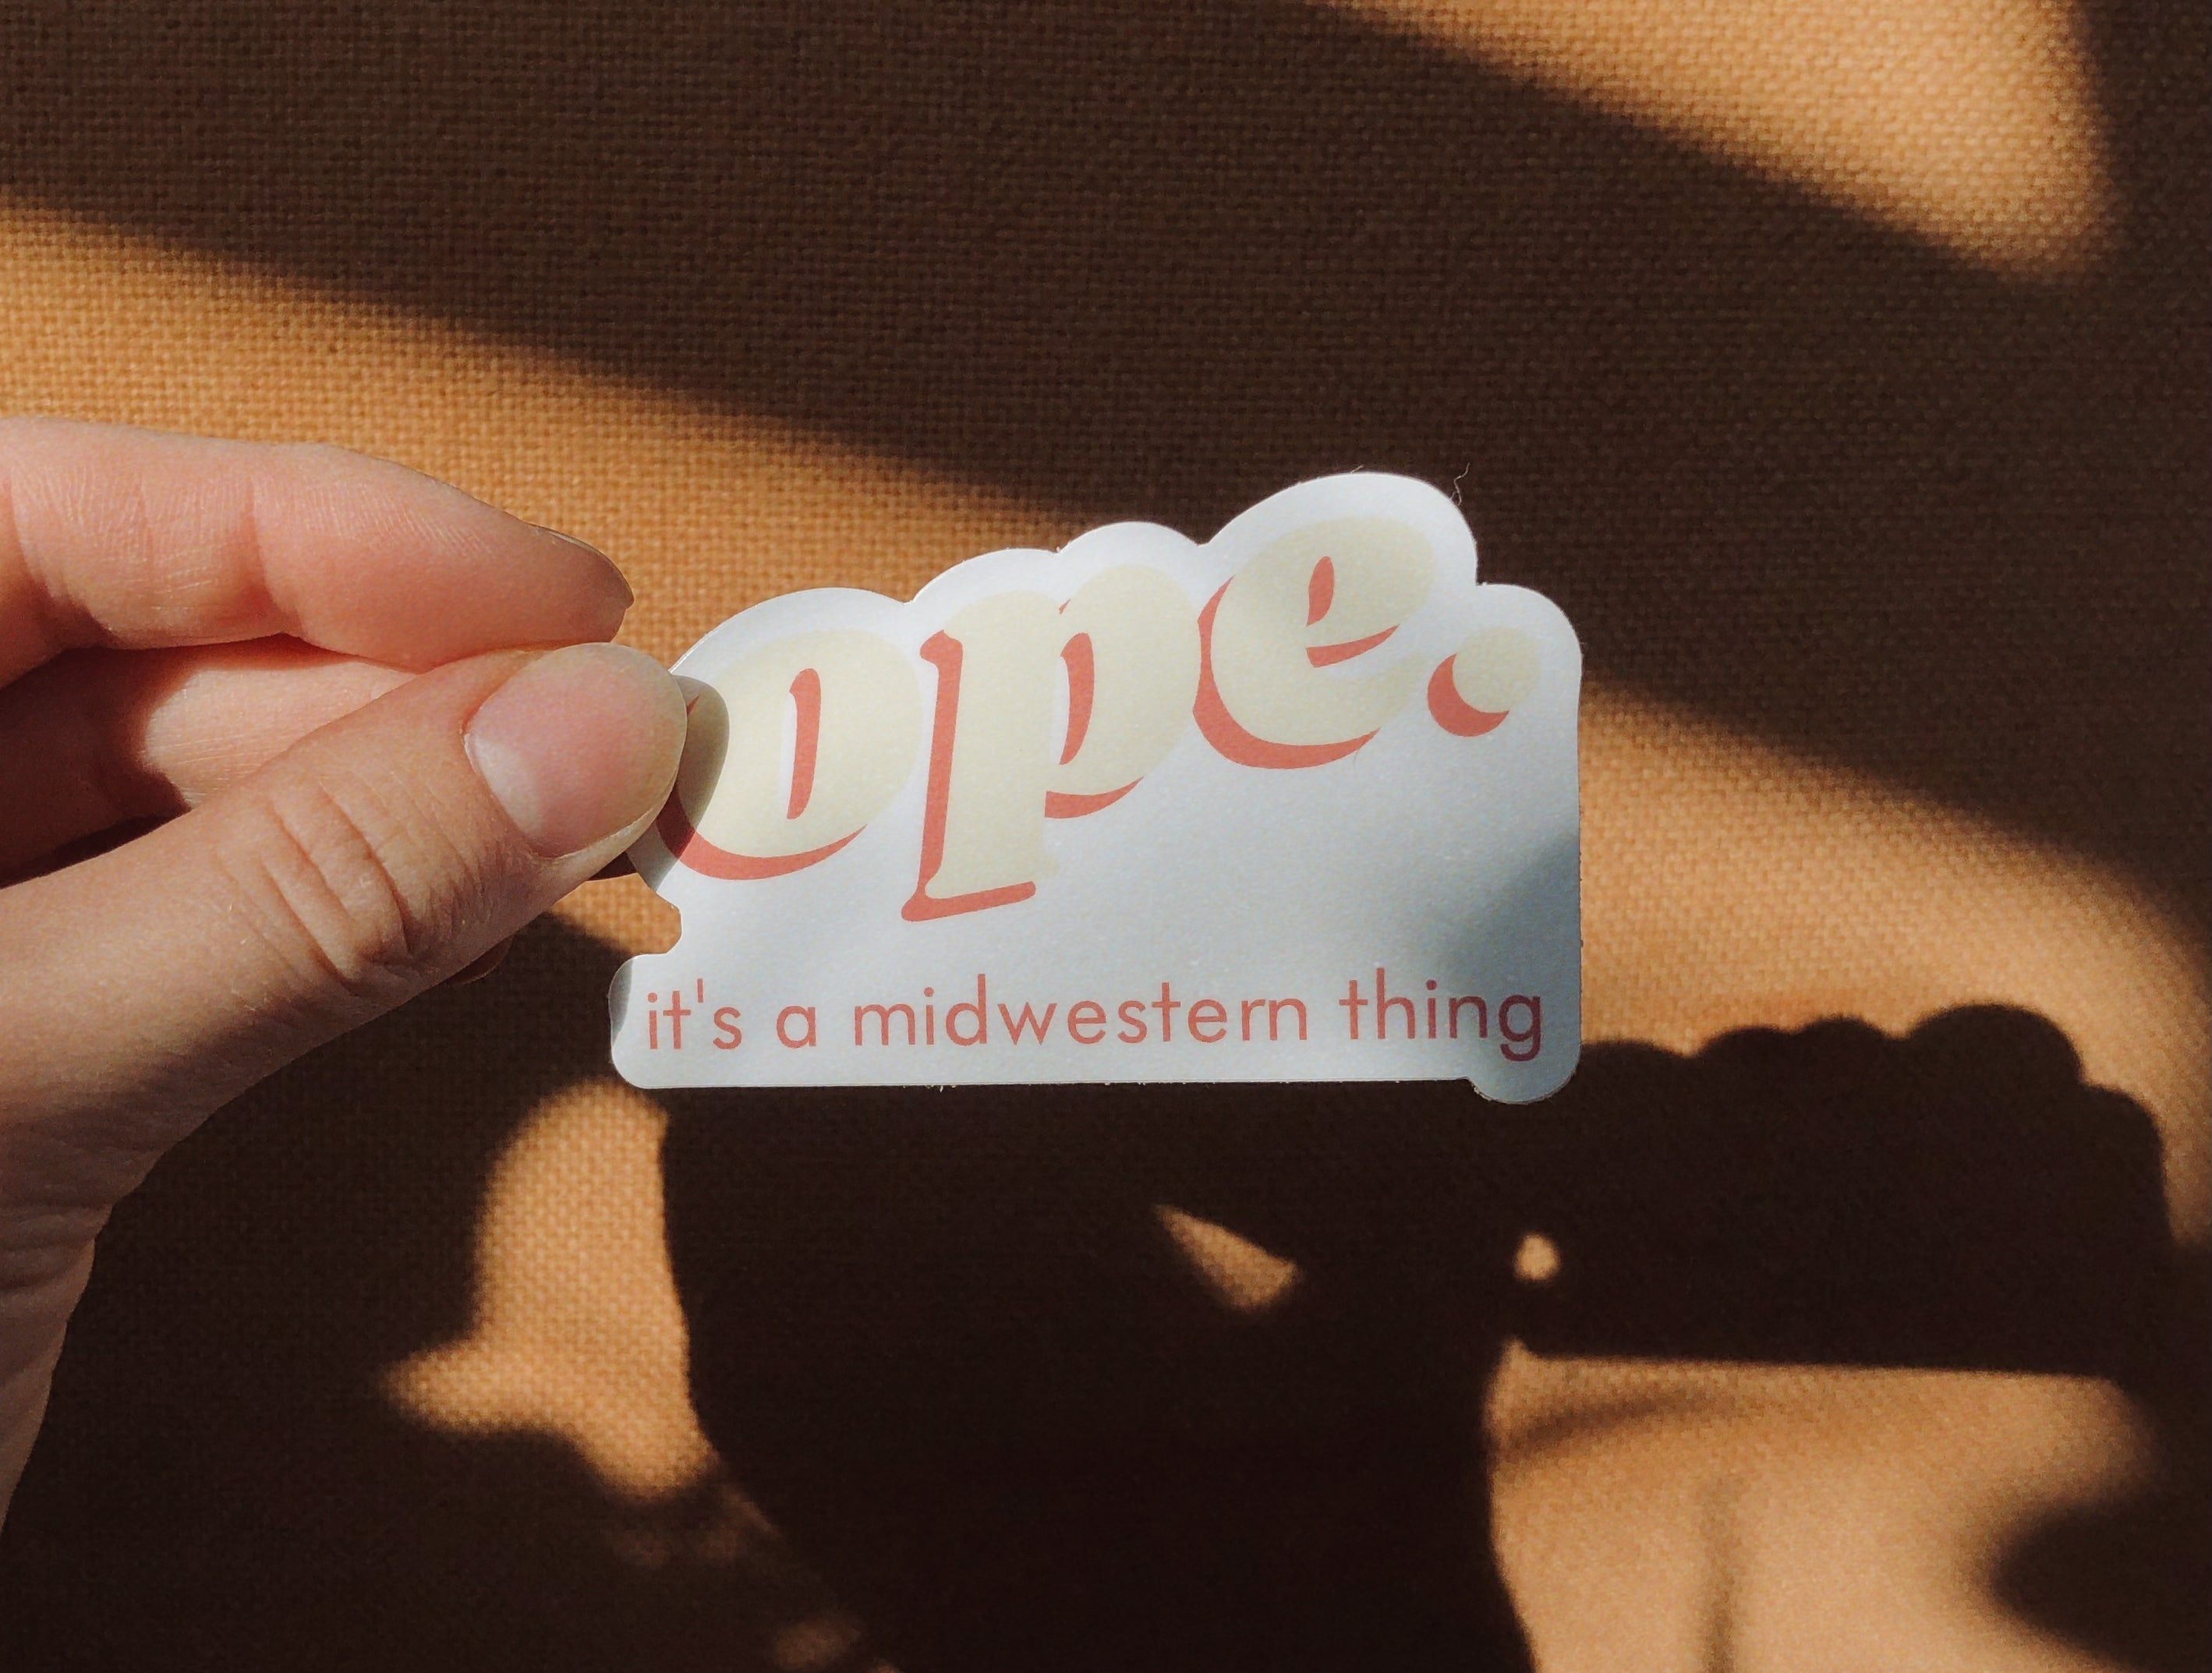 ope. it's a midwestern thing sticker